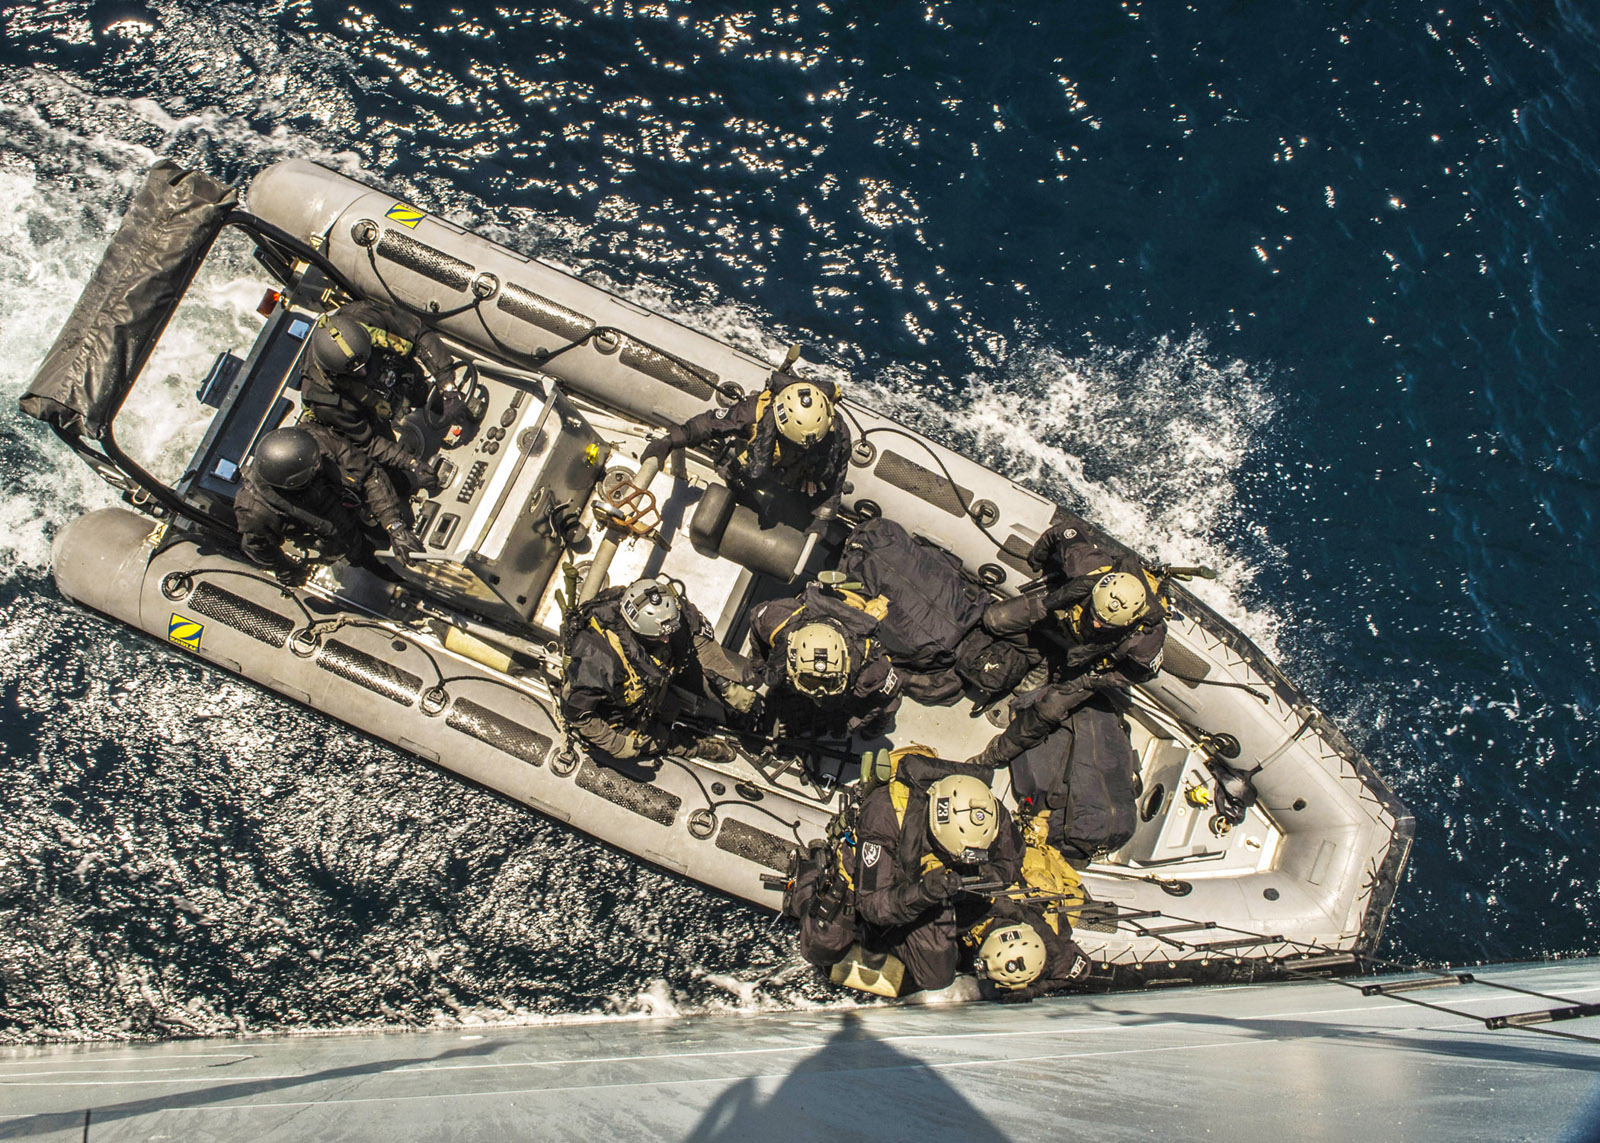 HMCS Fredericton's enhanced naval boarding arrives in its rigid-hulled inflatable boat to climb aboard a suspect vessel during a multinational exercise in the Mediterranean Sea.